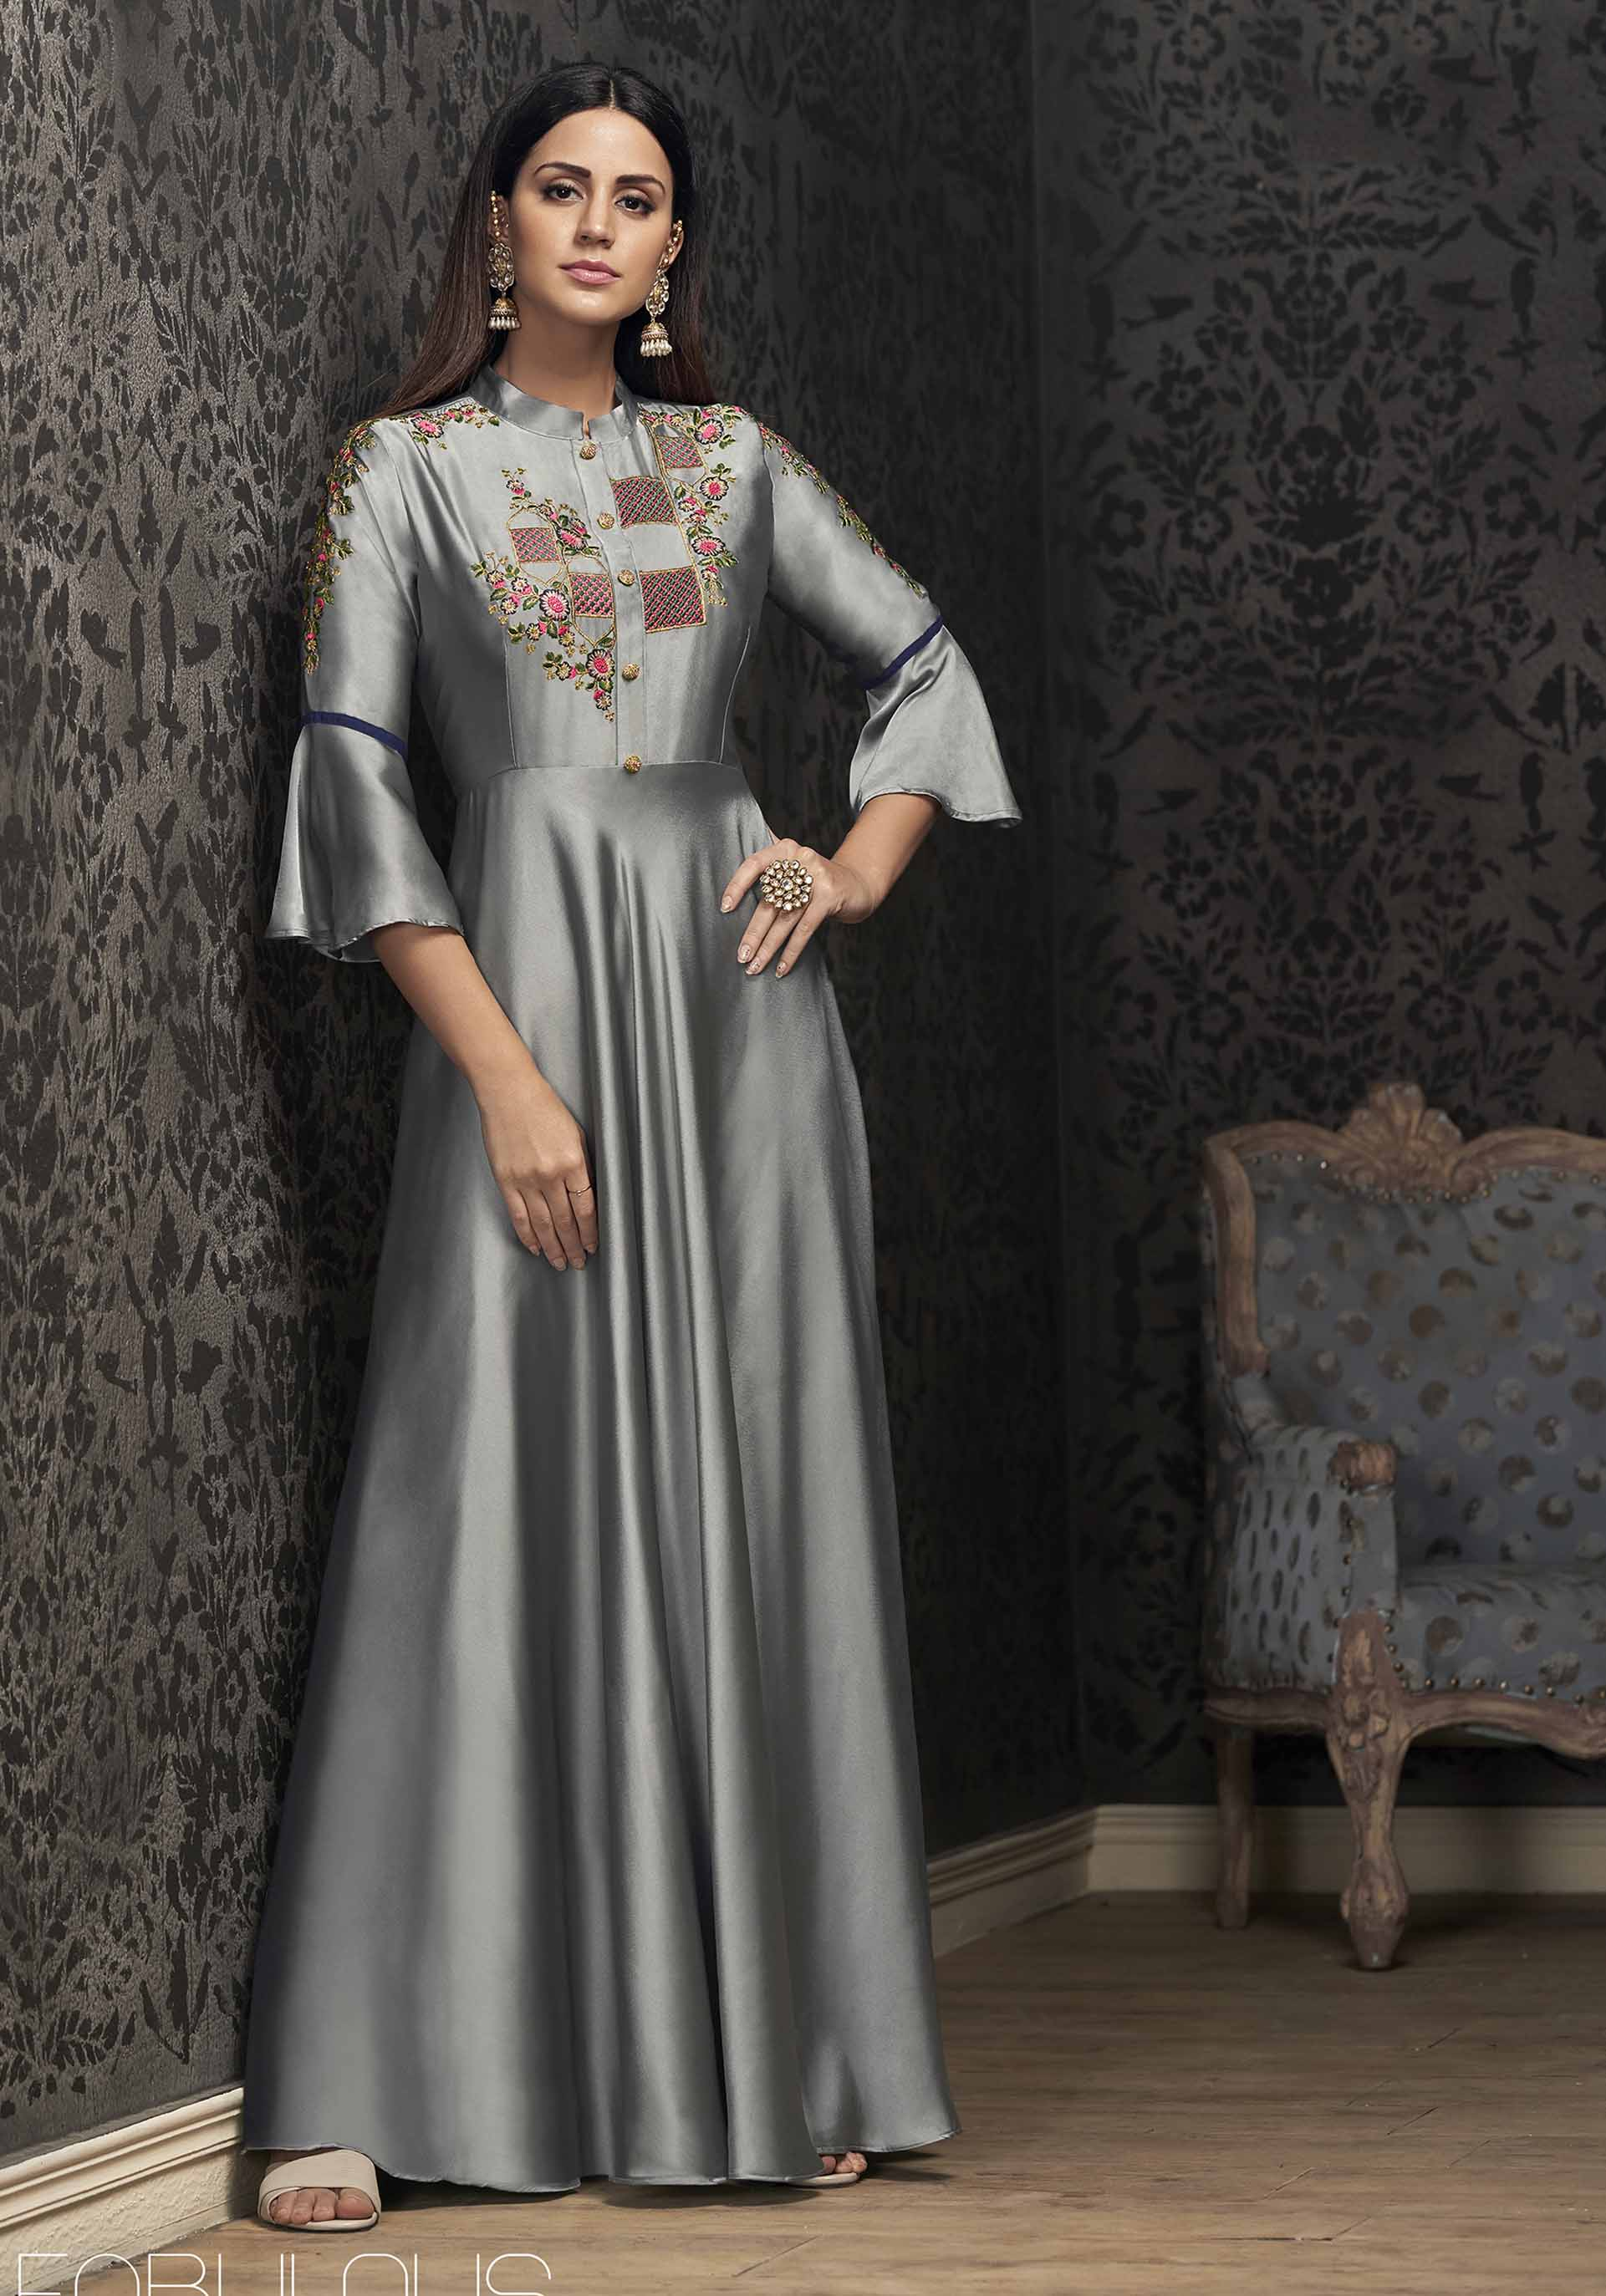 Flaunt Your Rich And Elegant Taste Wearing This Designer Readymade Gown In Grey Color